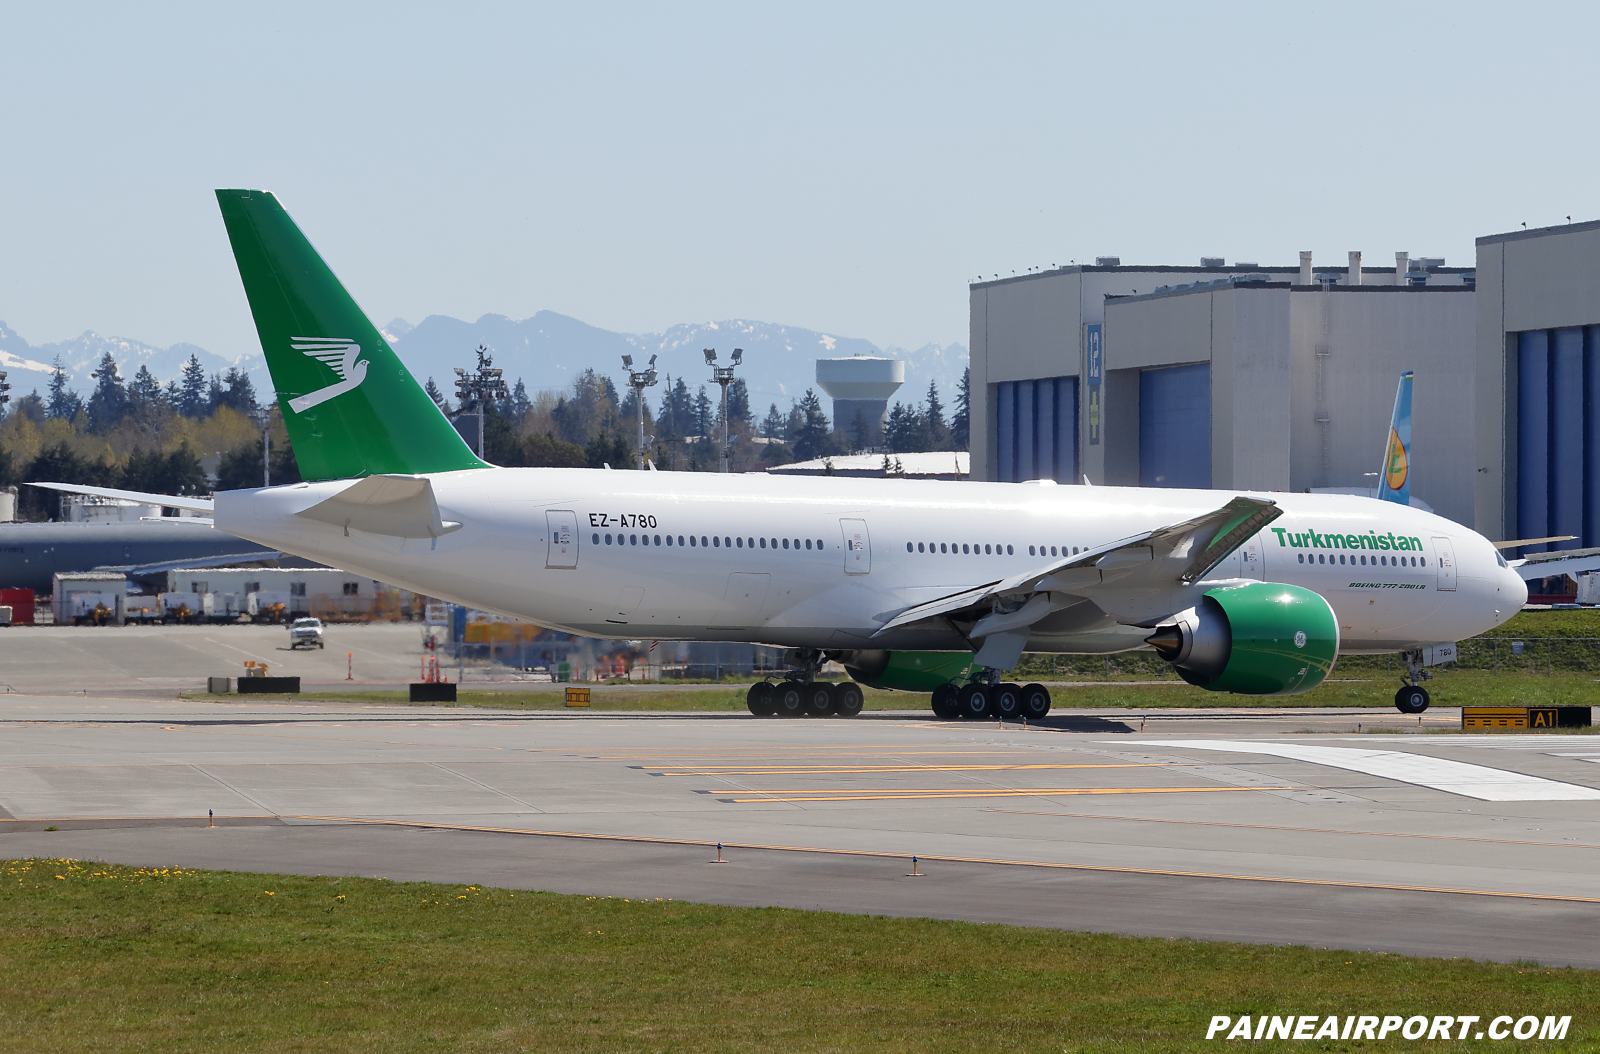 Turkmenistan Airlines 777 EZ-A780 at KPAE Paine Field